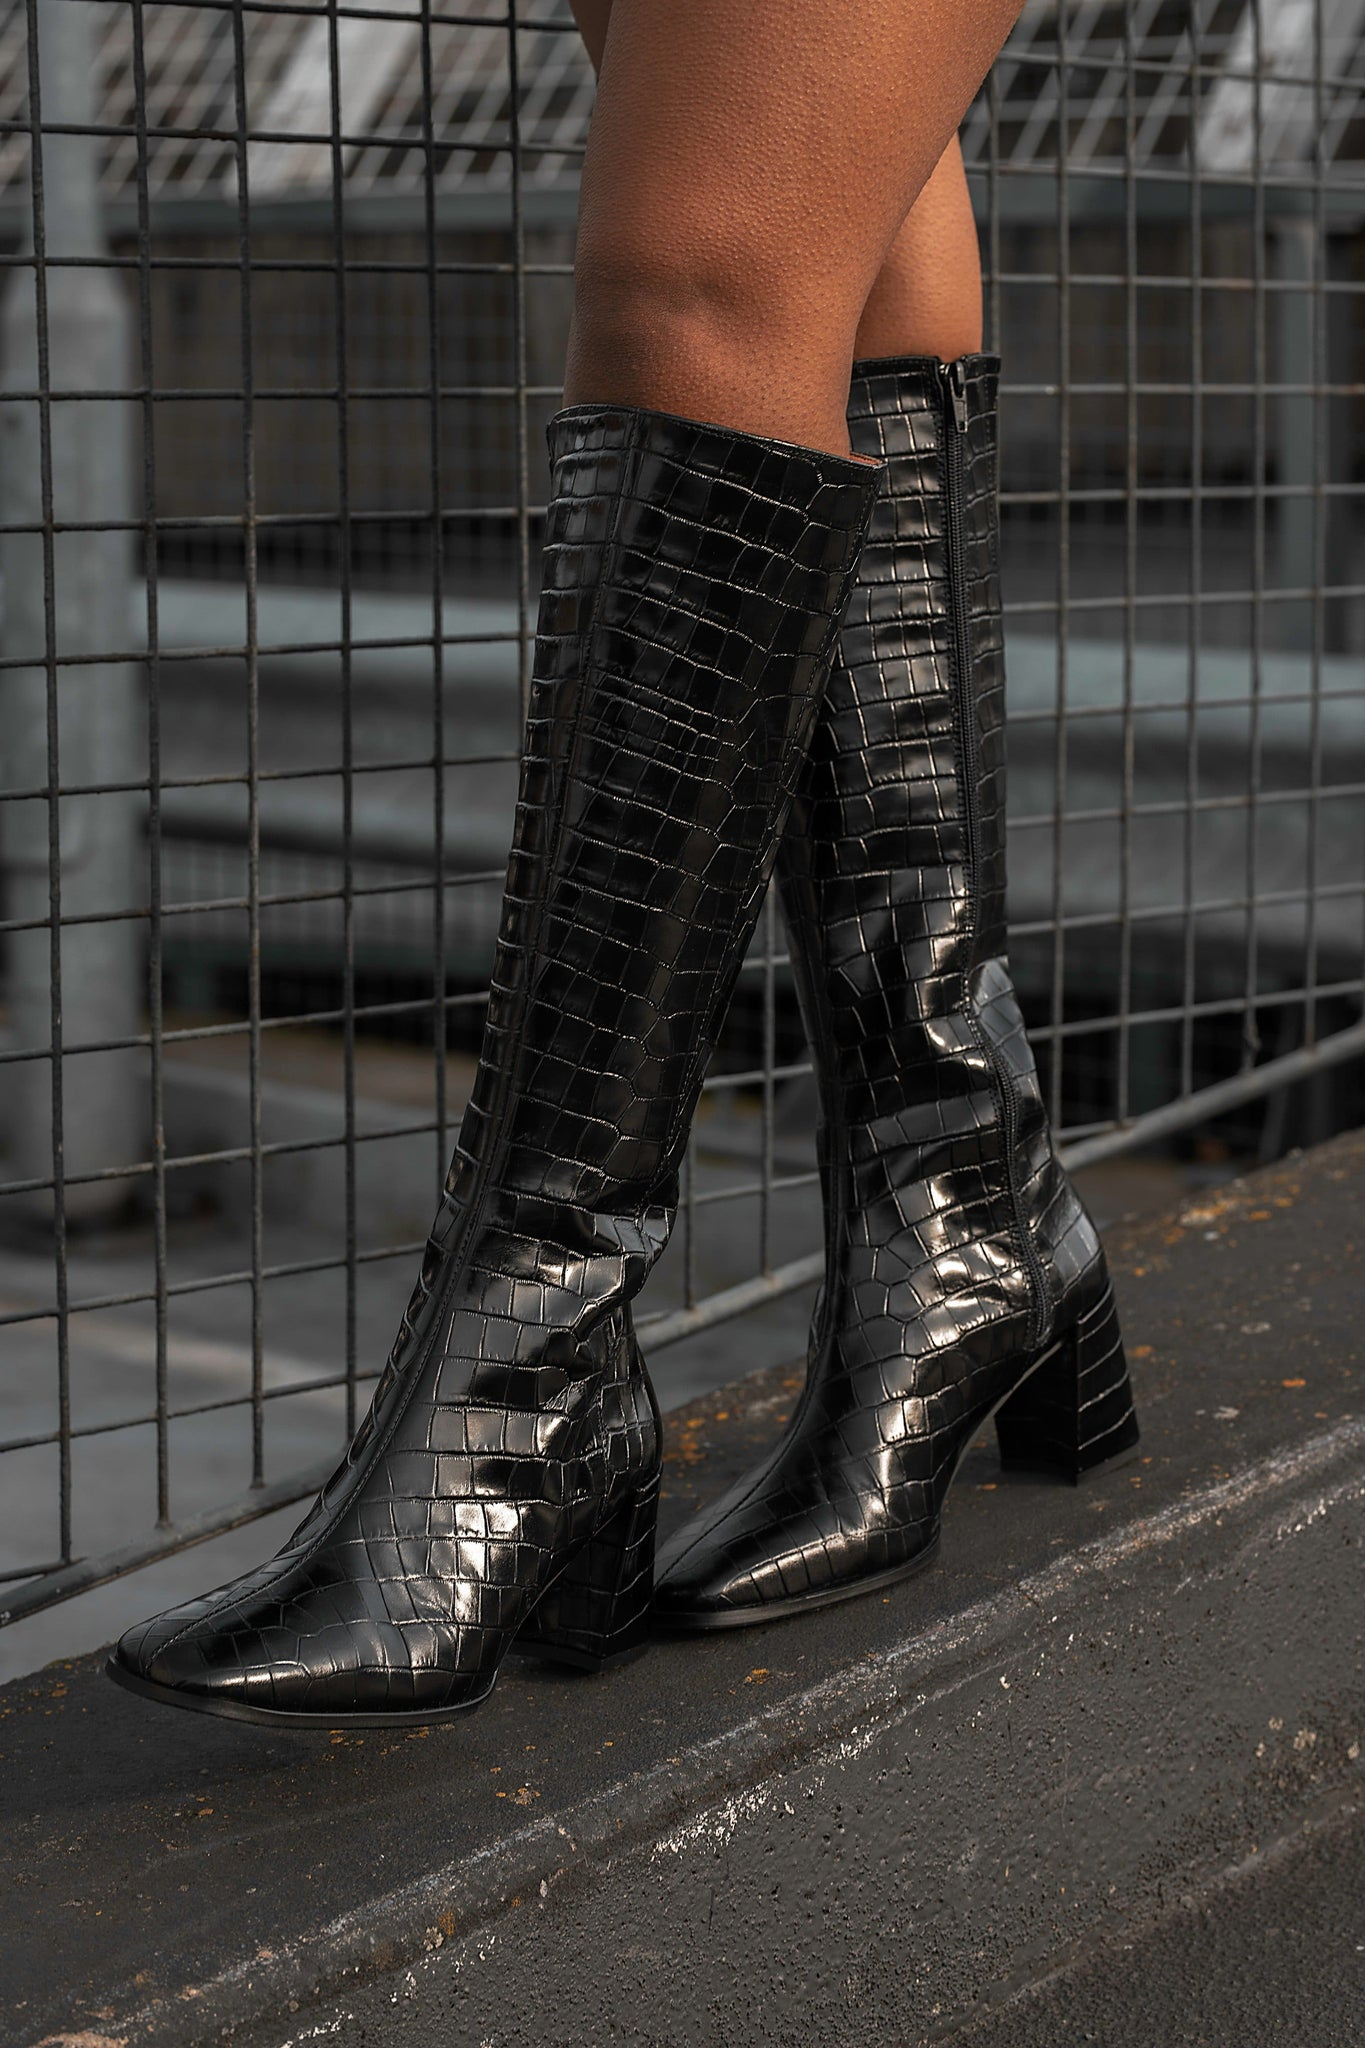 SUSO | Black Leather Pattern Knee High Boots - TrystShoes